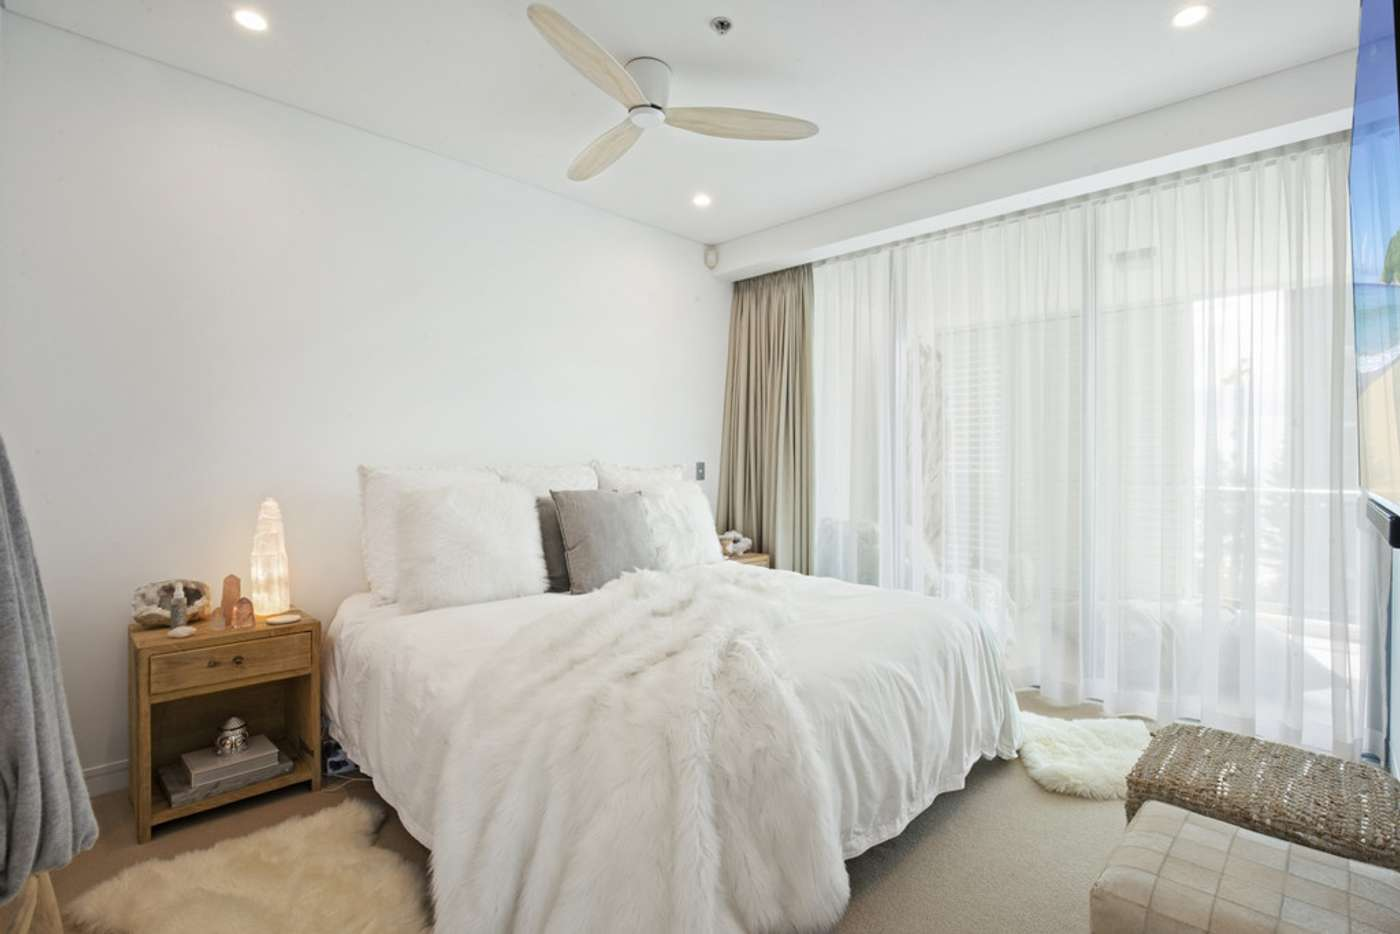 Seventh view of Homely apartment listing, 13/106 The Esplanade, Burleigh Heads QLD 4220